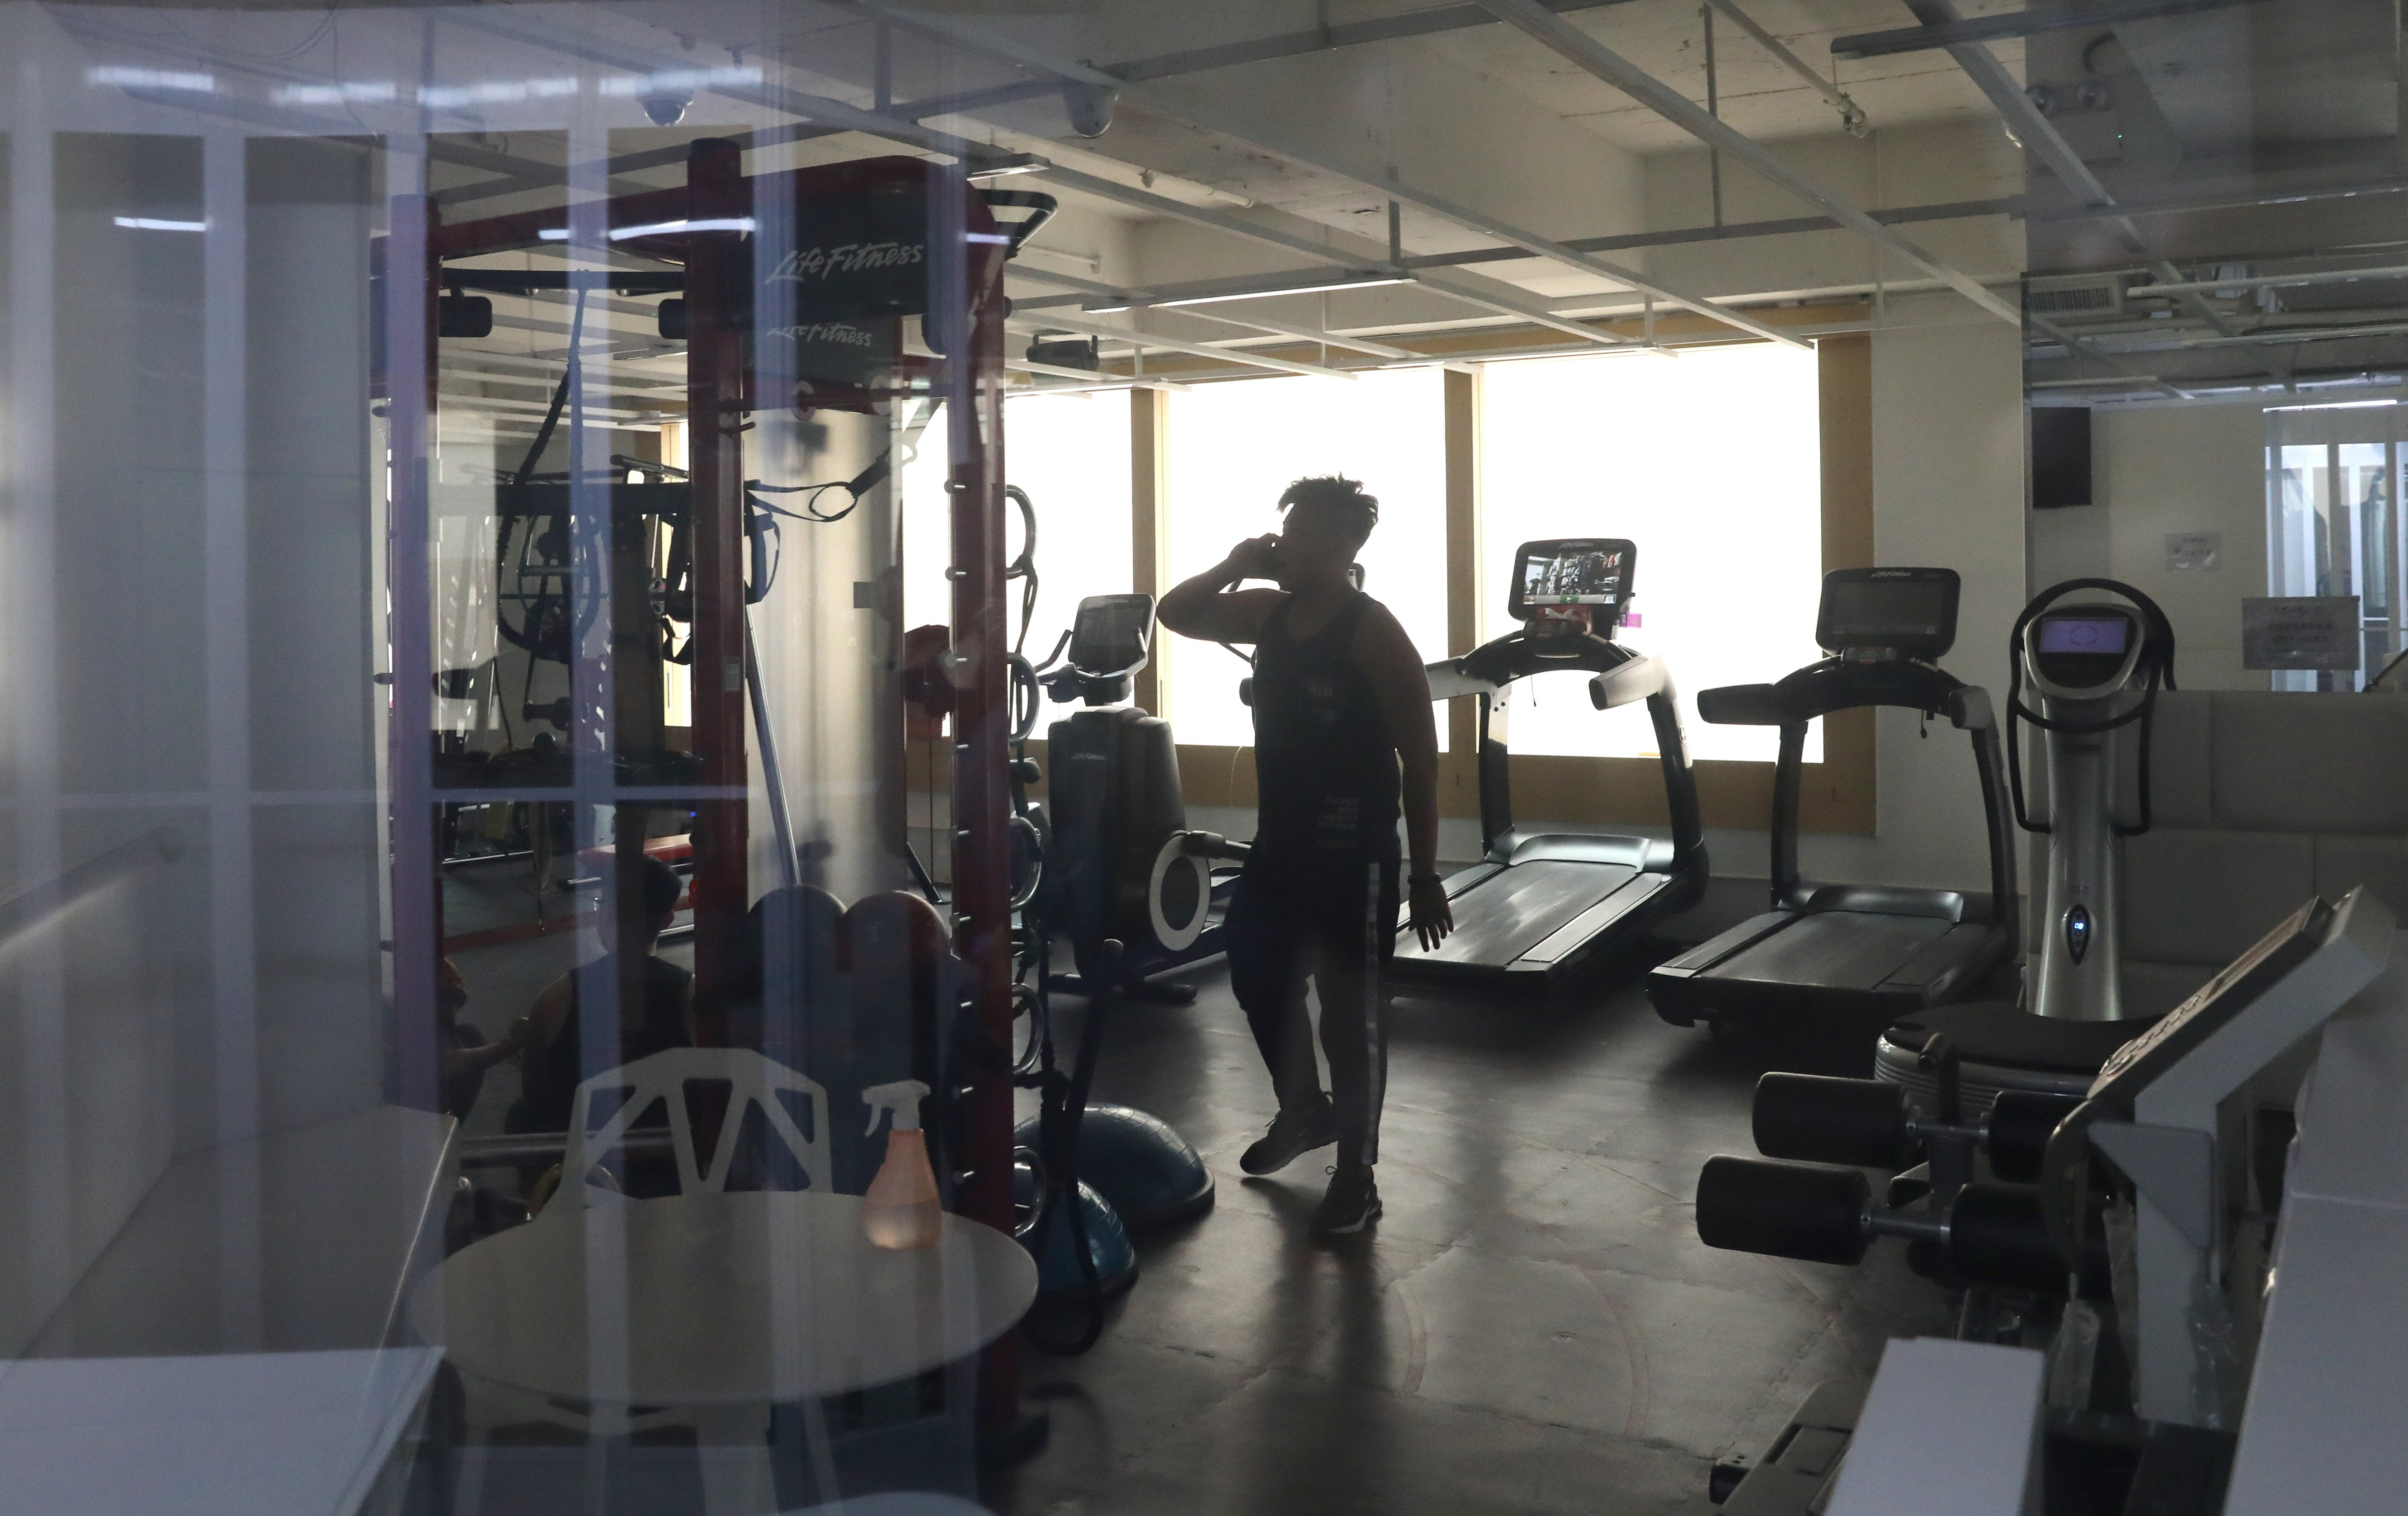 Hong kong gyms under fire for forcing customers to borrow from